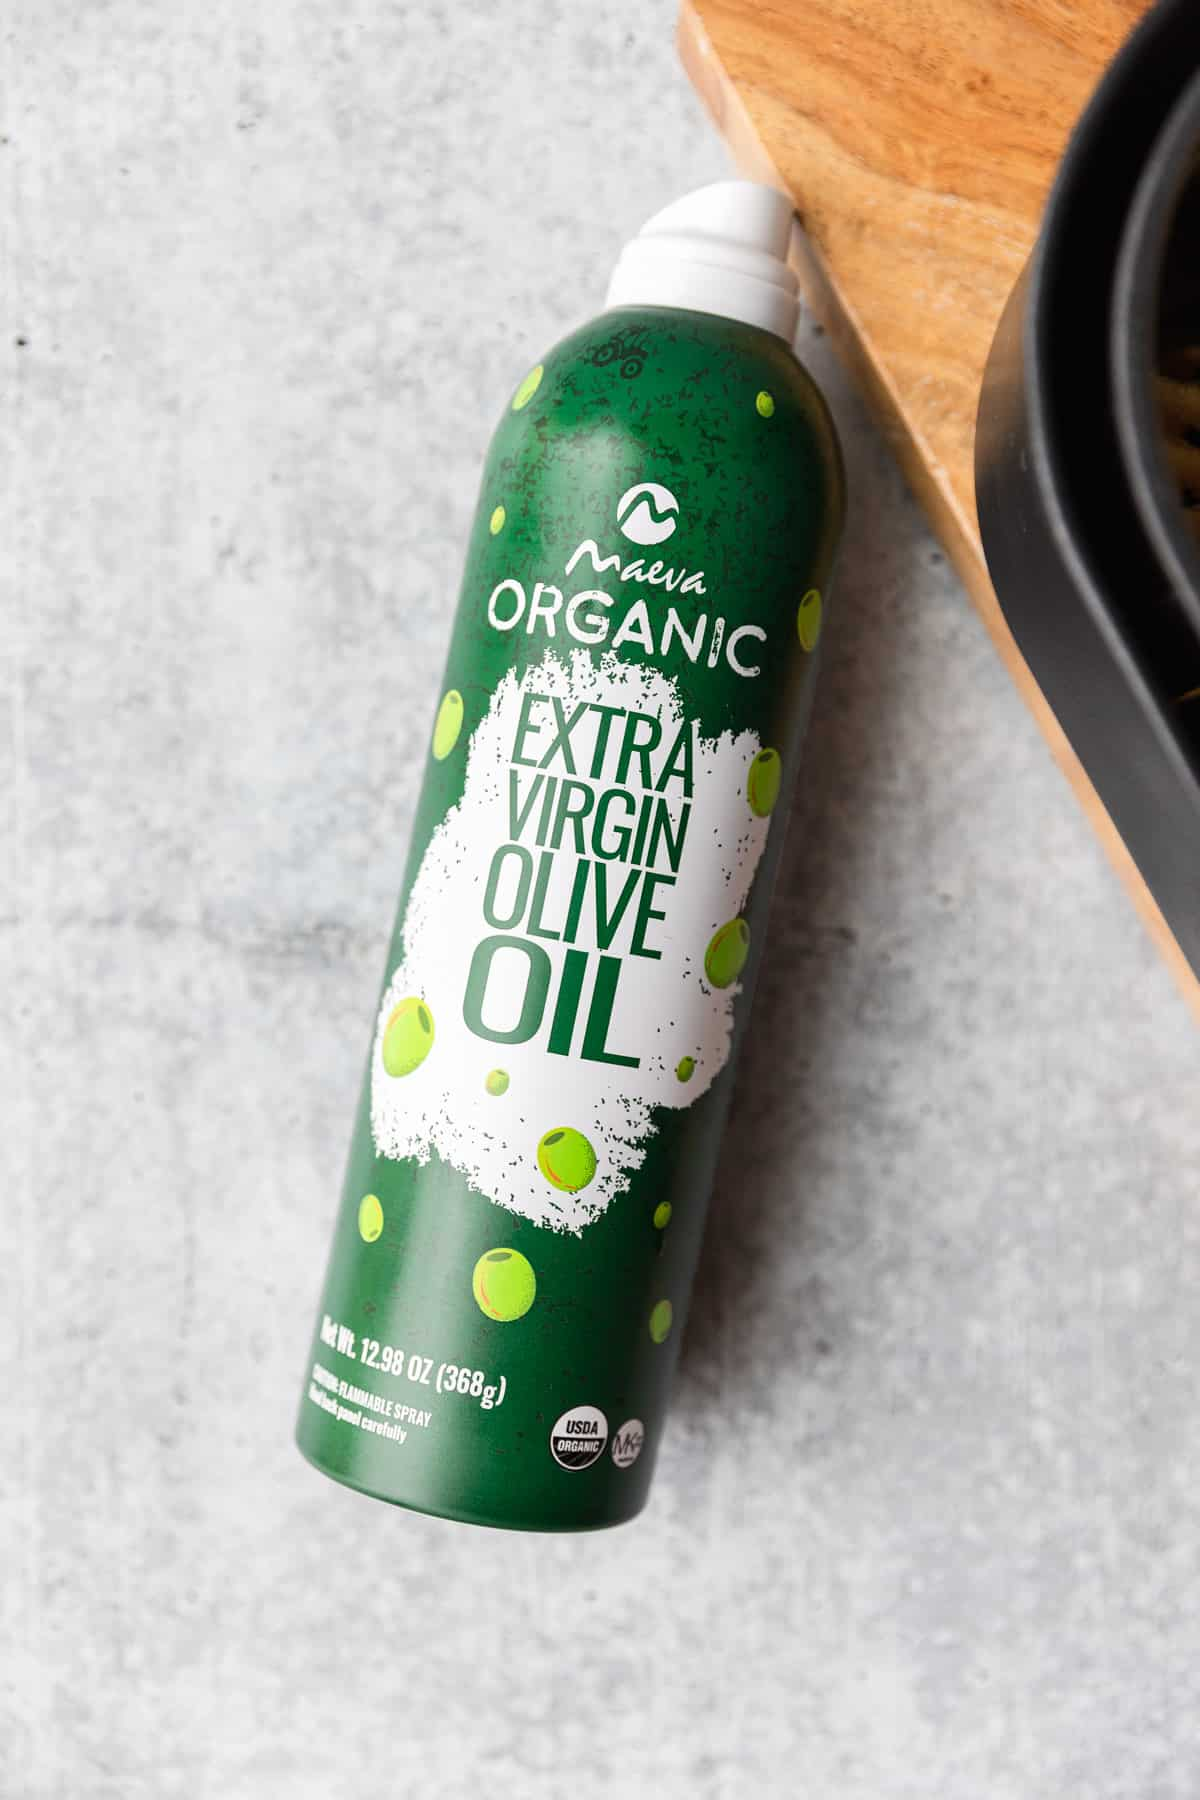 a can of extra virgin olive oil spray